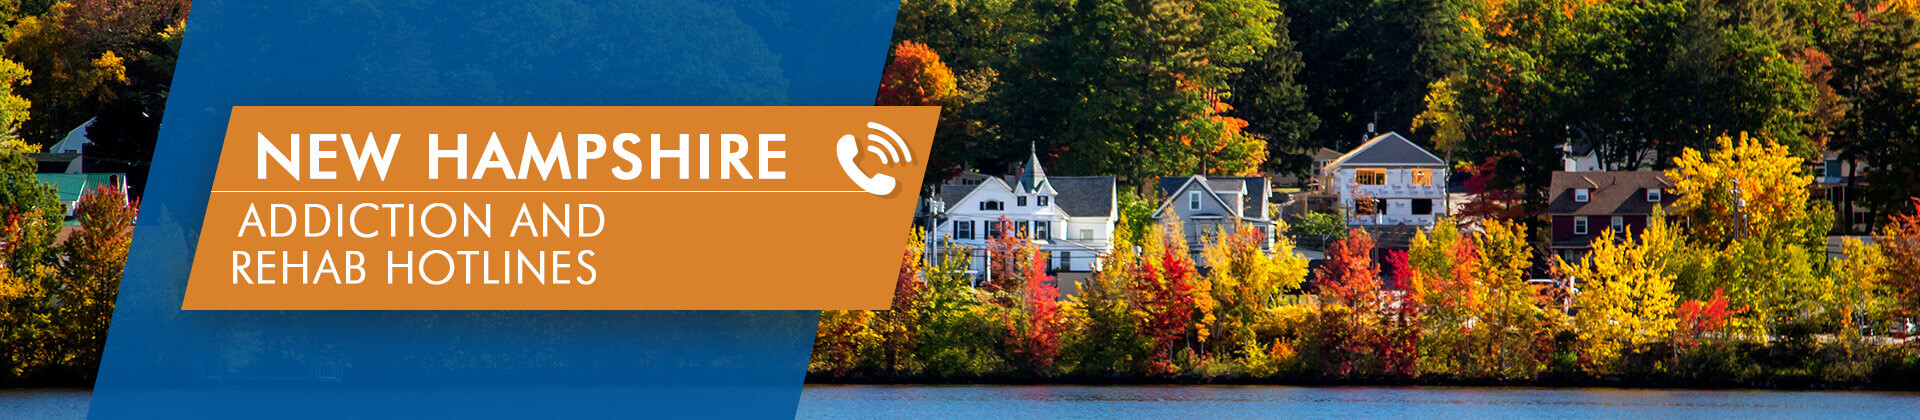 New Hampshire addiction and rehab hotlines